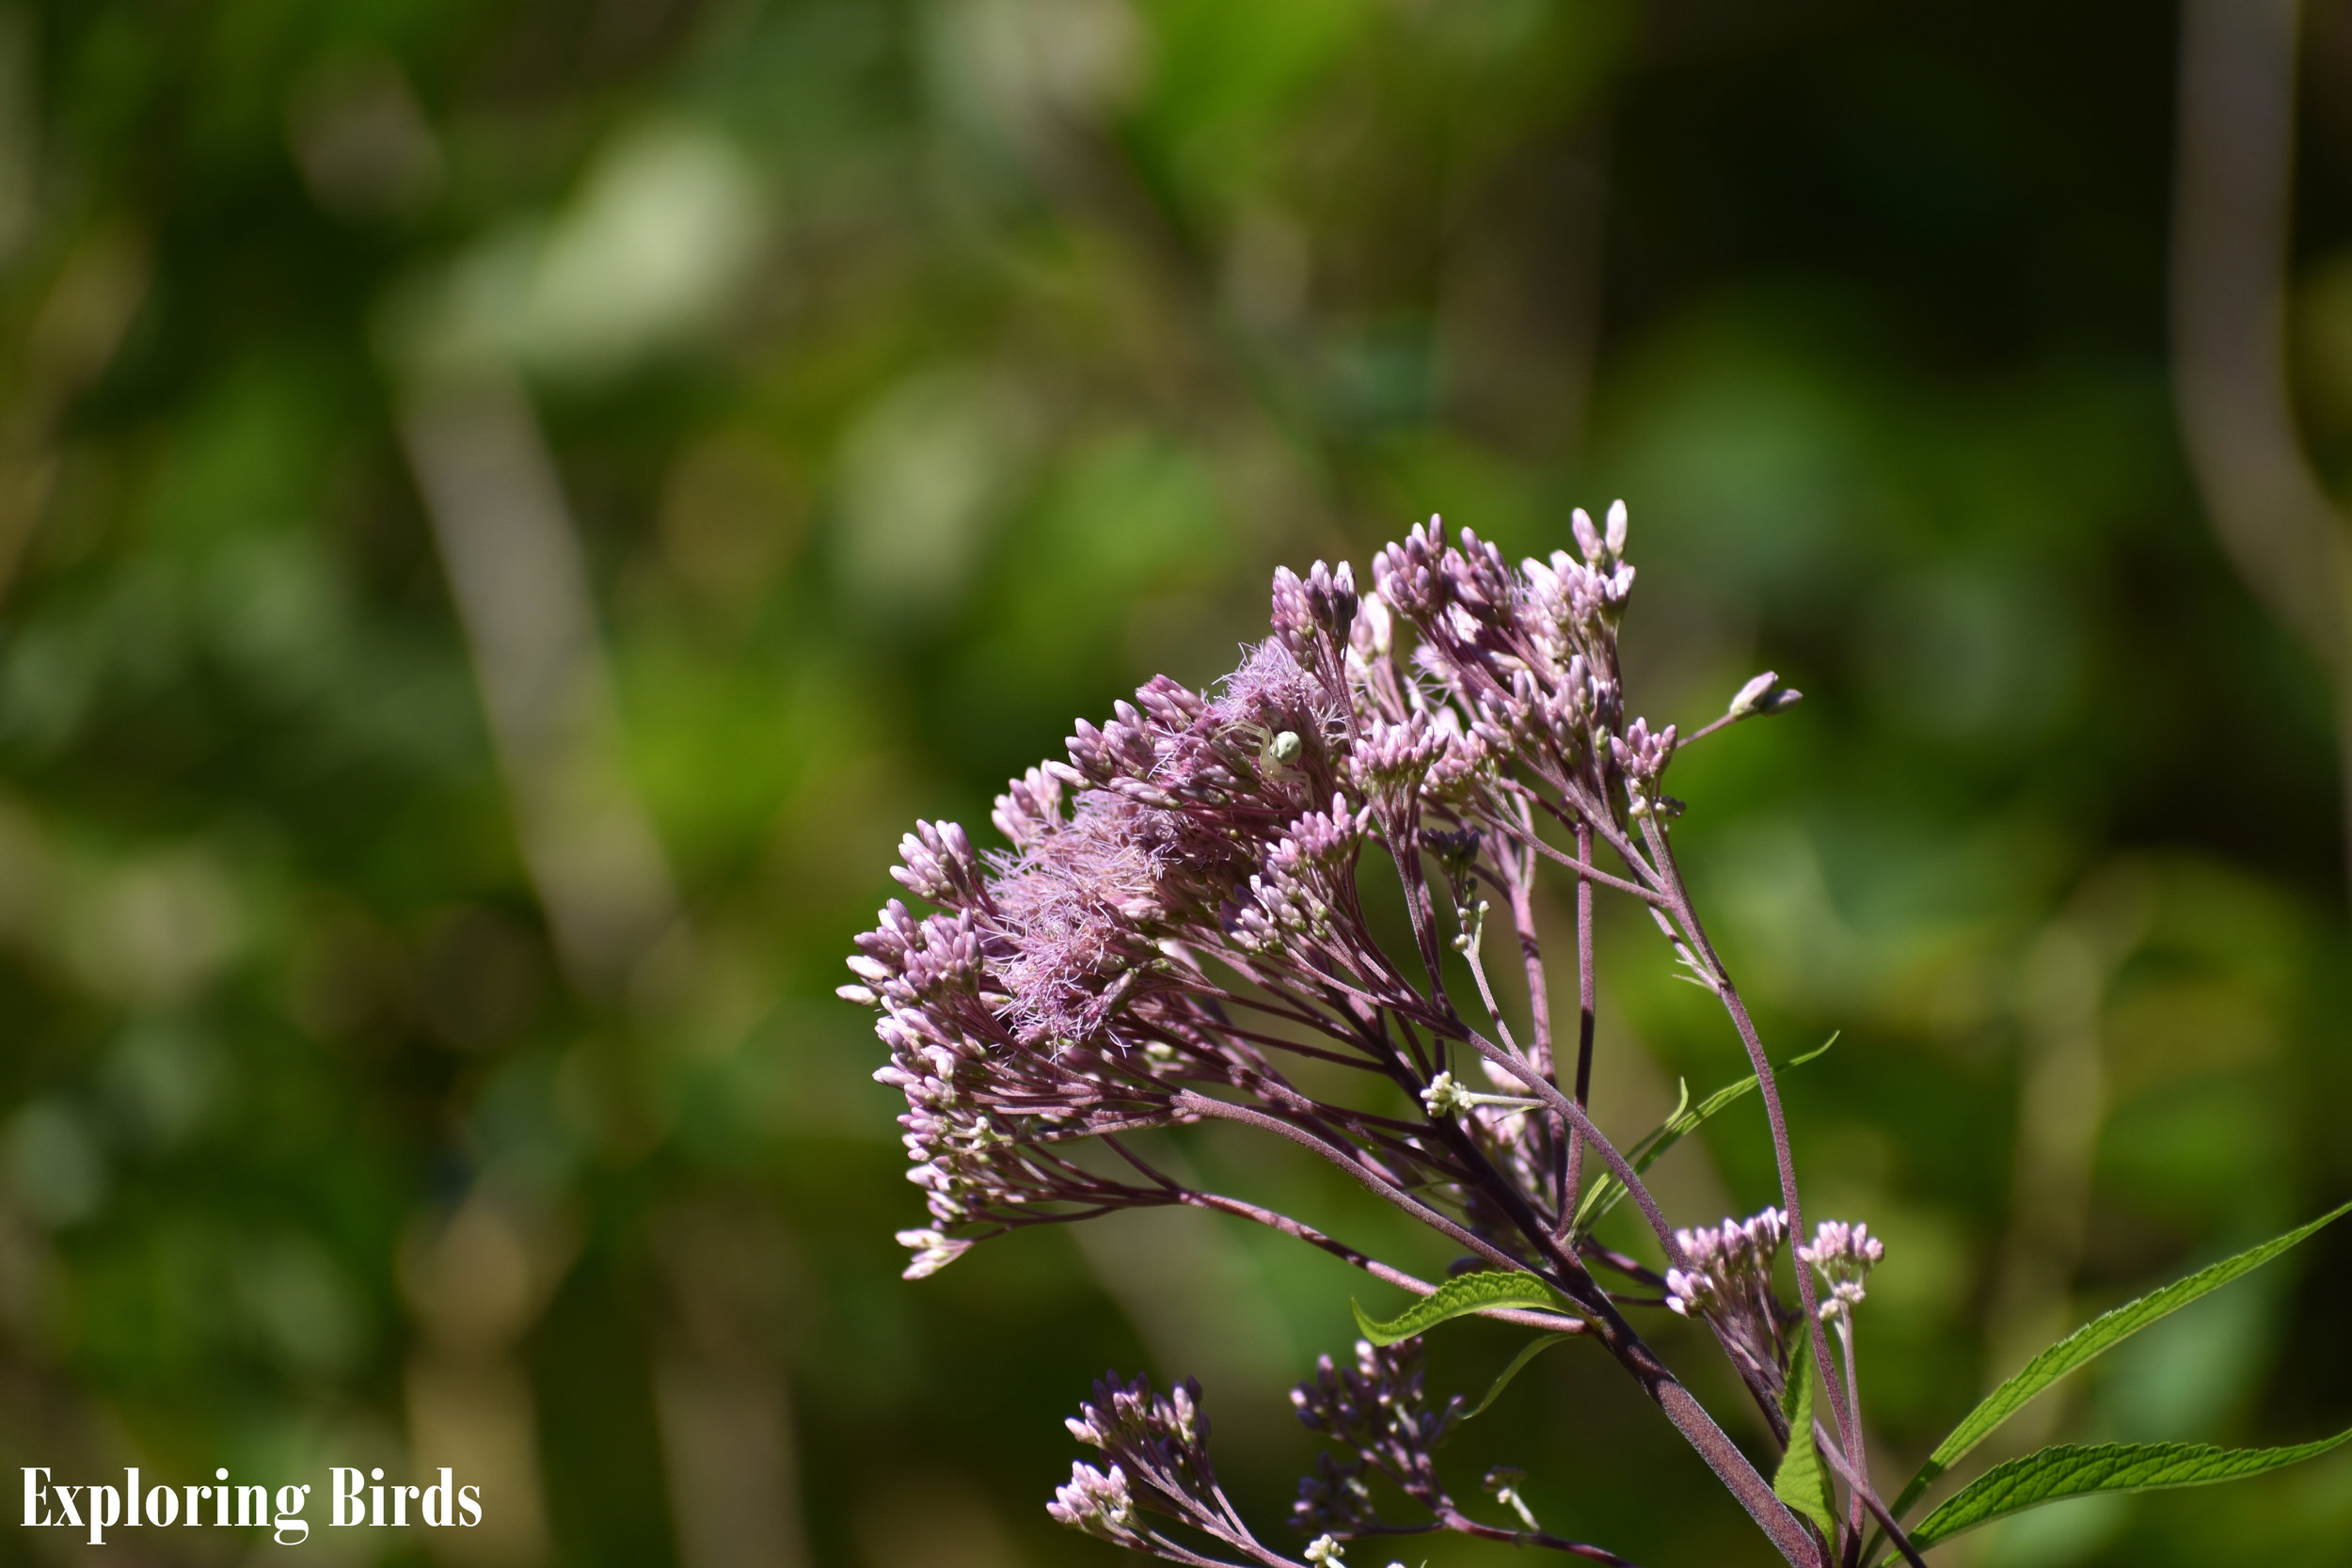 Joe Pye Weed is a flower that attracts birds